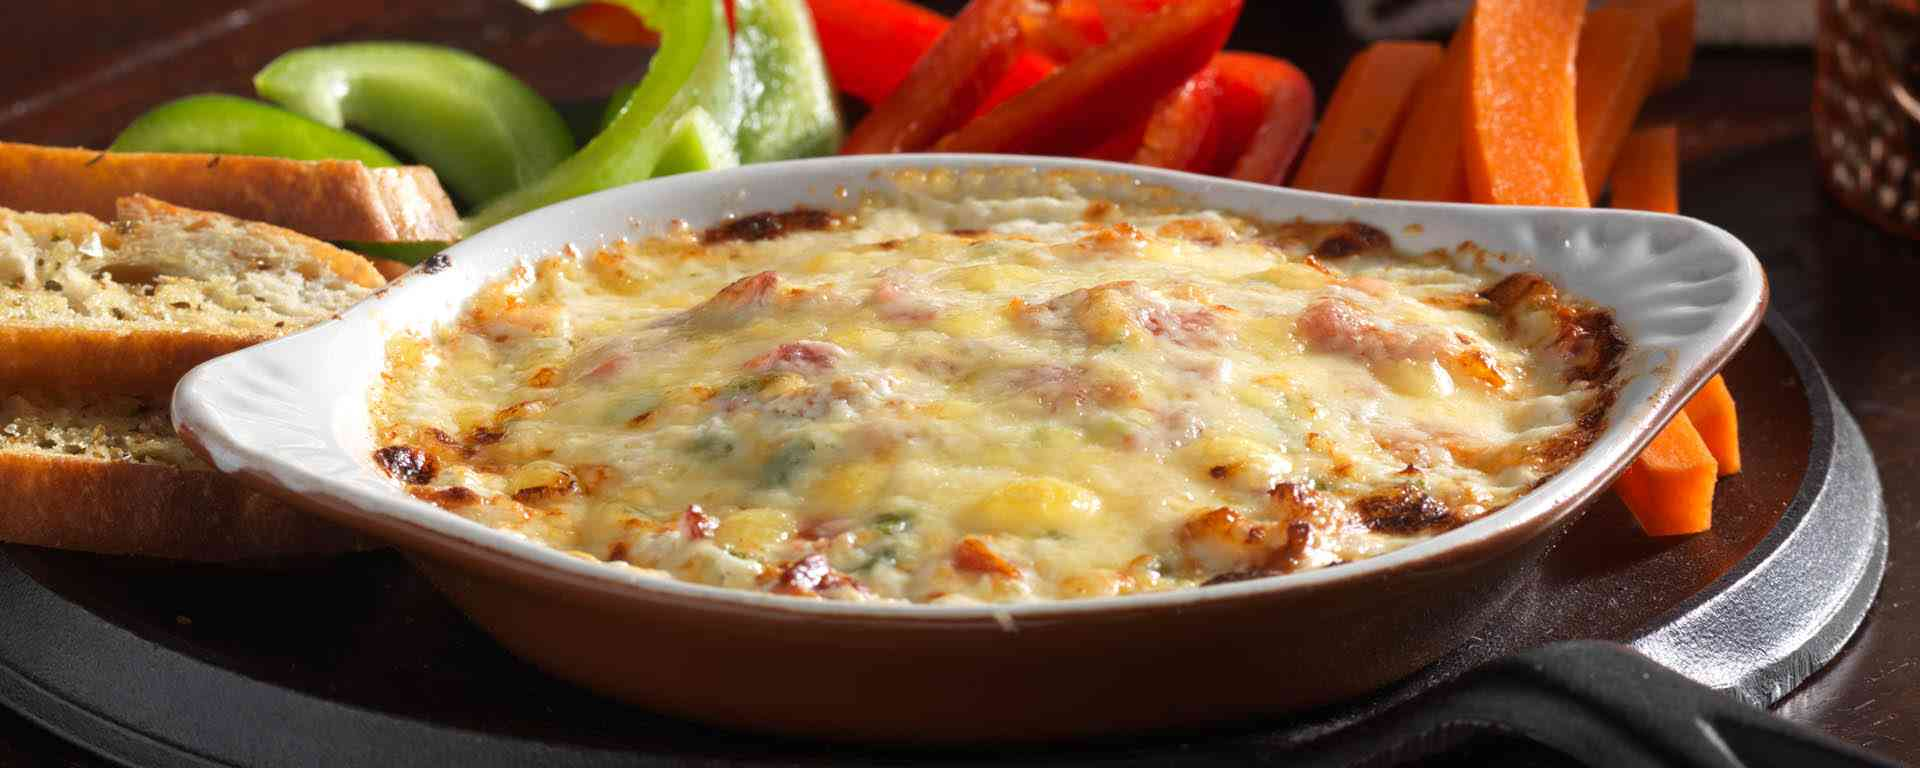 Photo for - Jalapeño and Bacon Goat Cheese Baked Dip